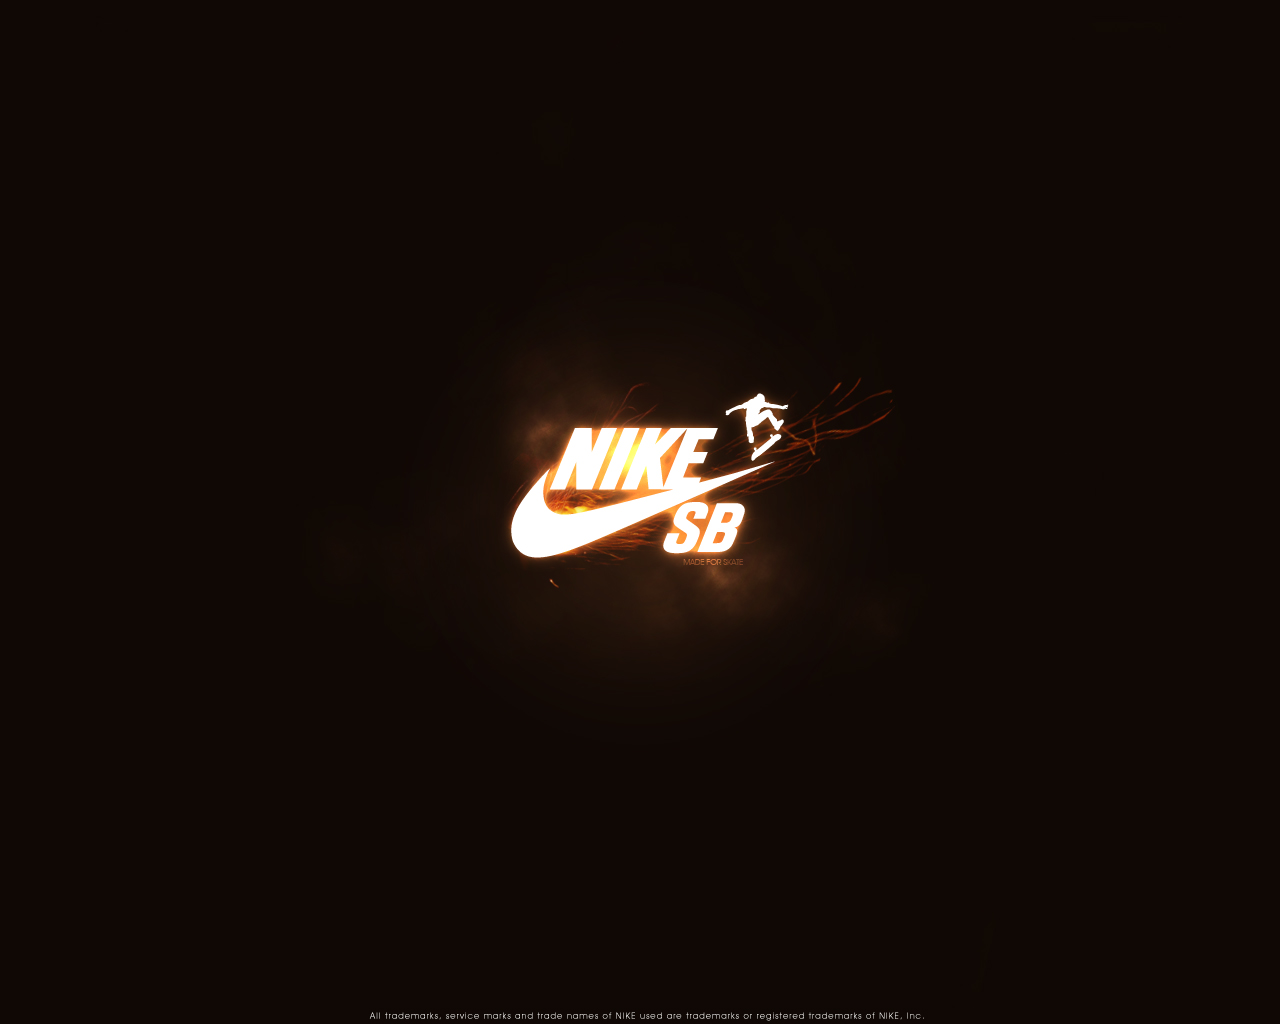 Nike Sb Wallpaper For Iphone Picserio Com